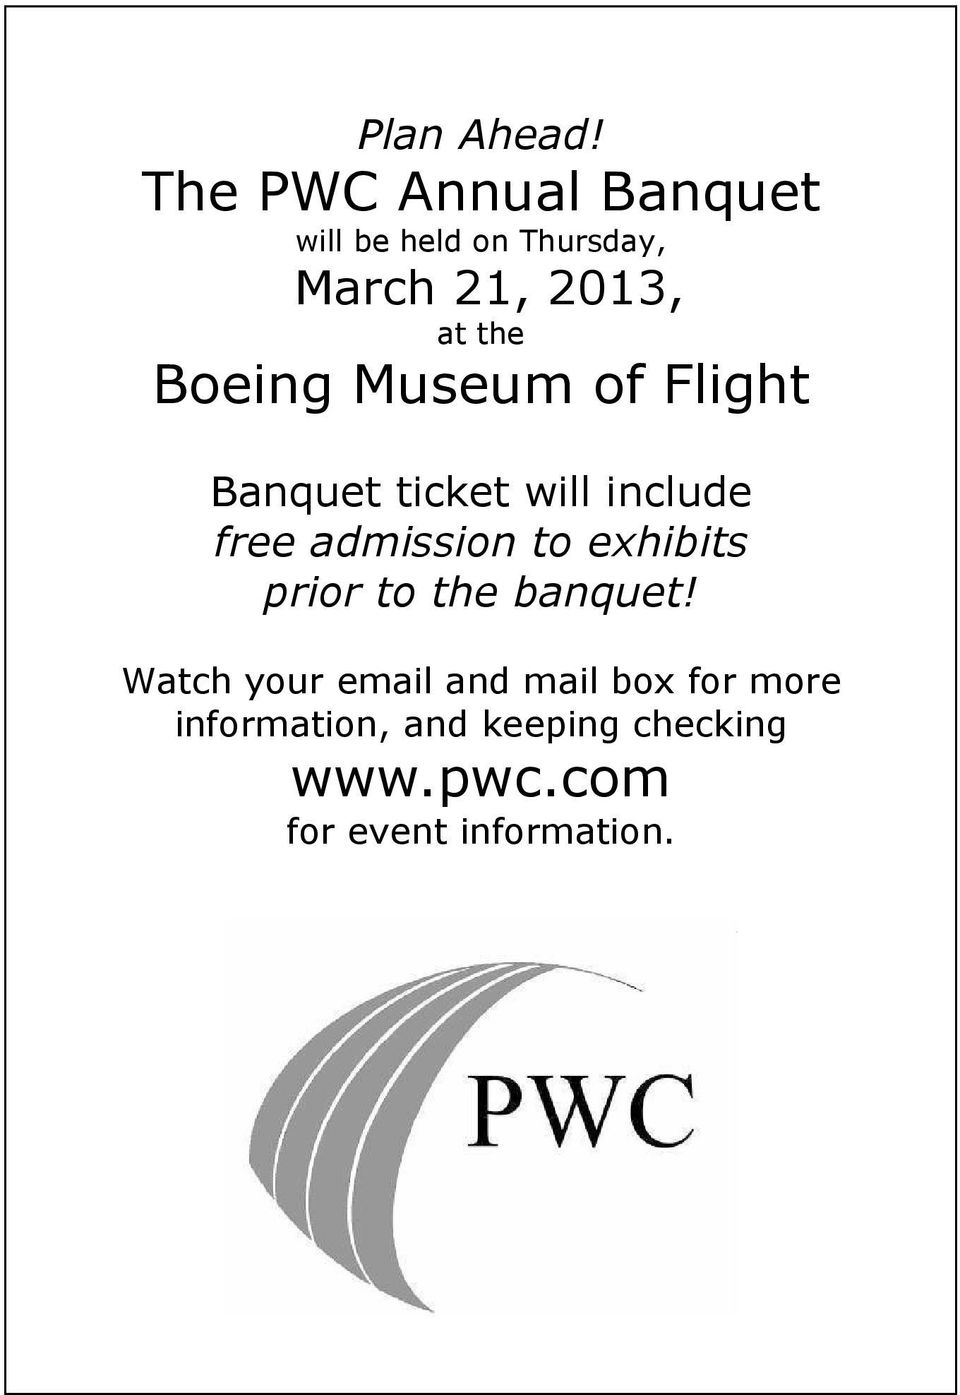 Boeing Museum of Flight Banquet ticket will include free admission to